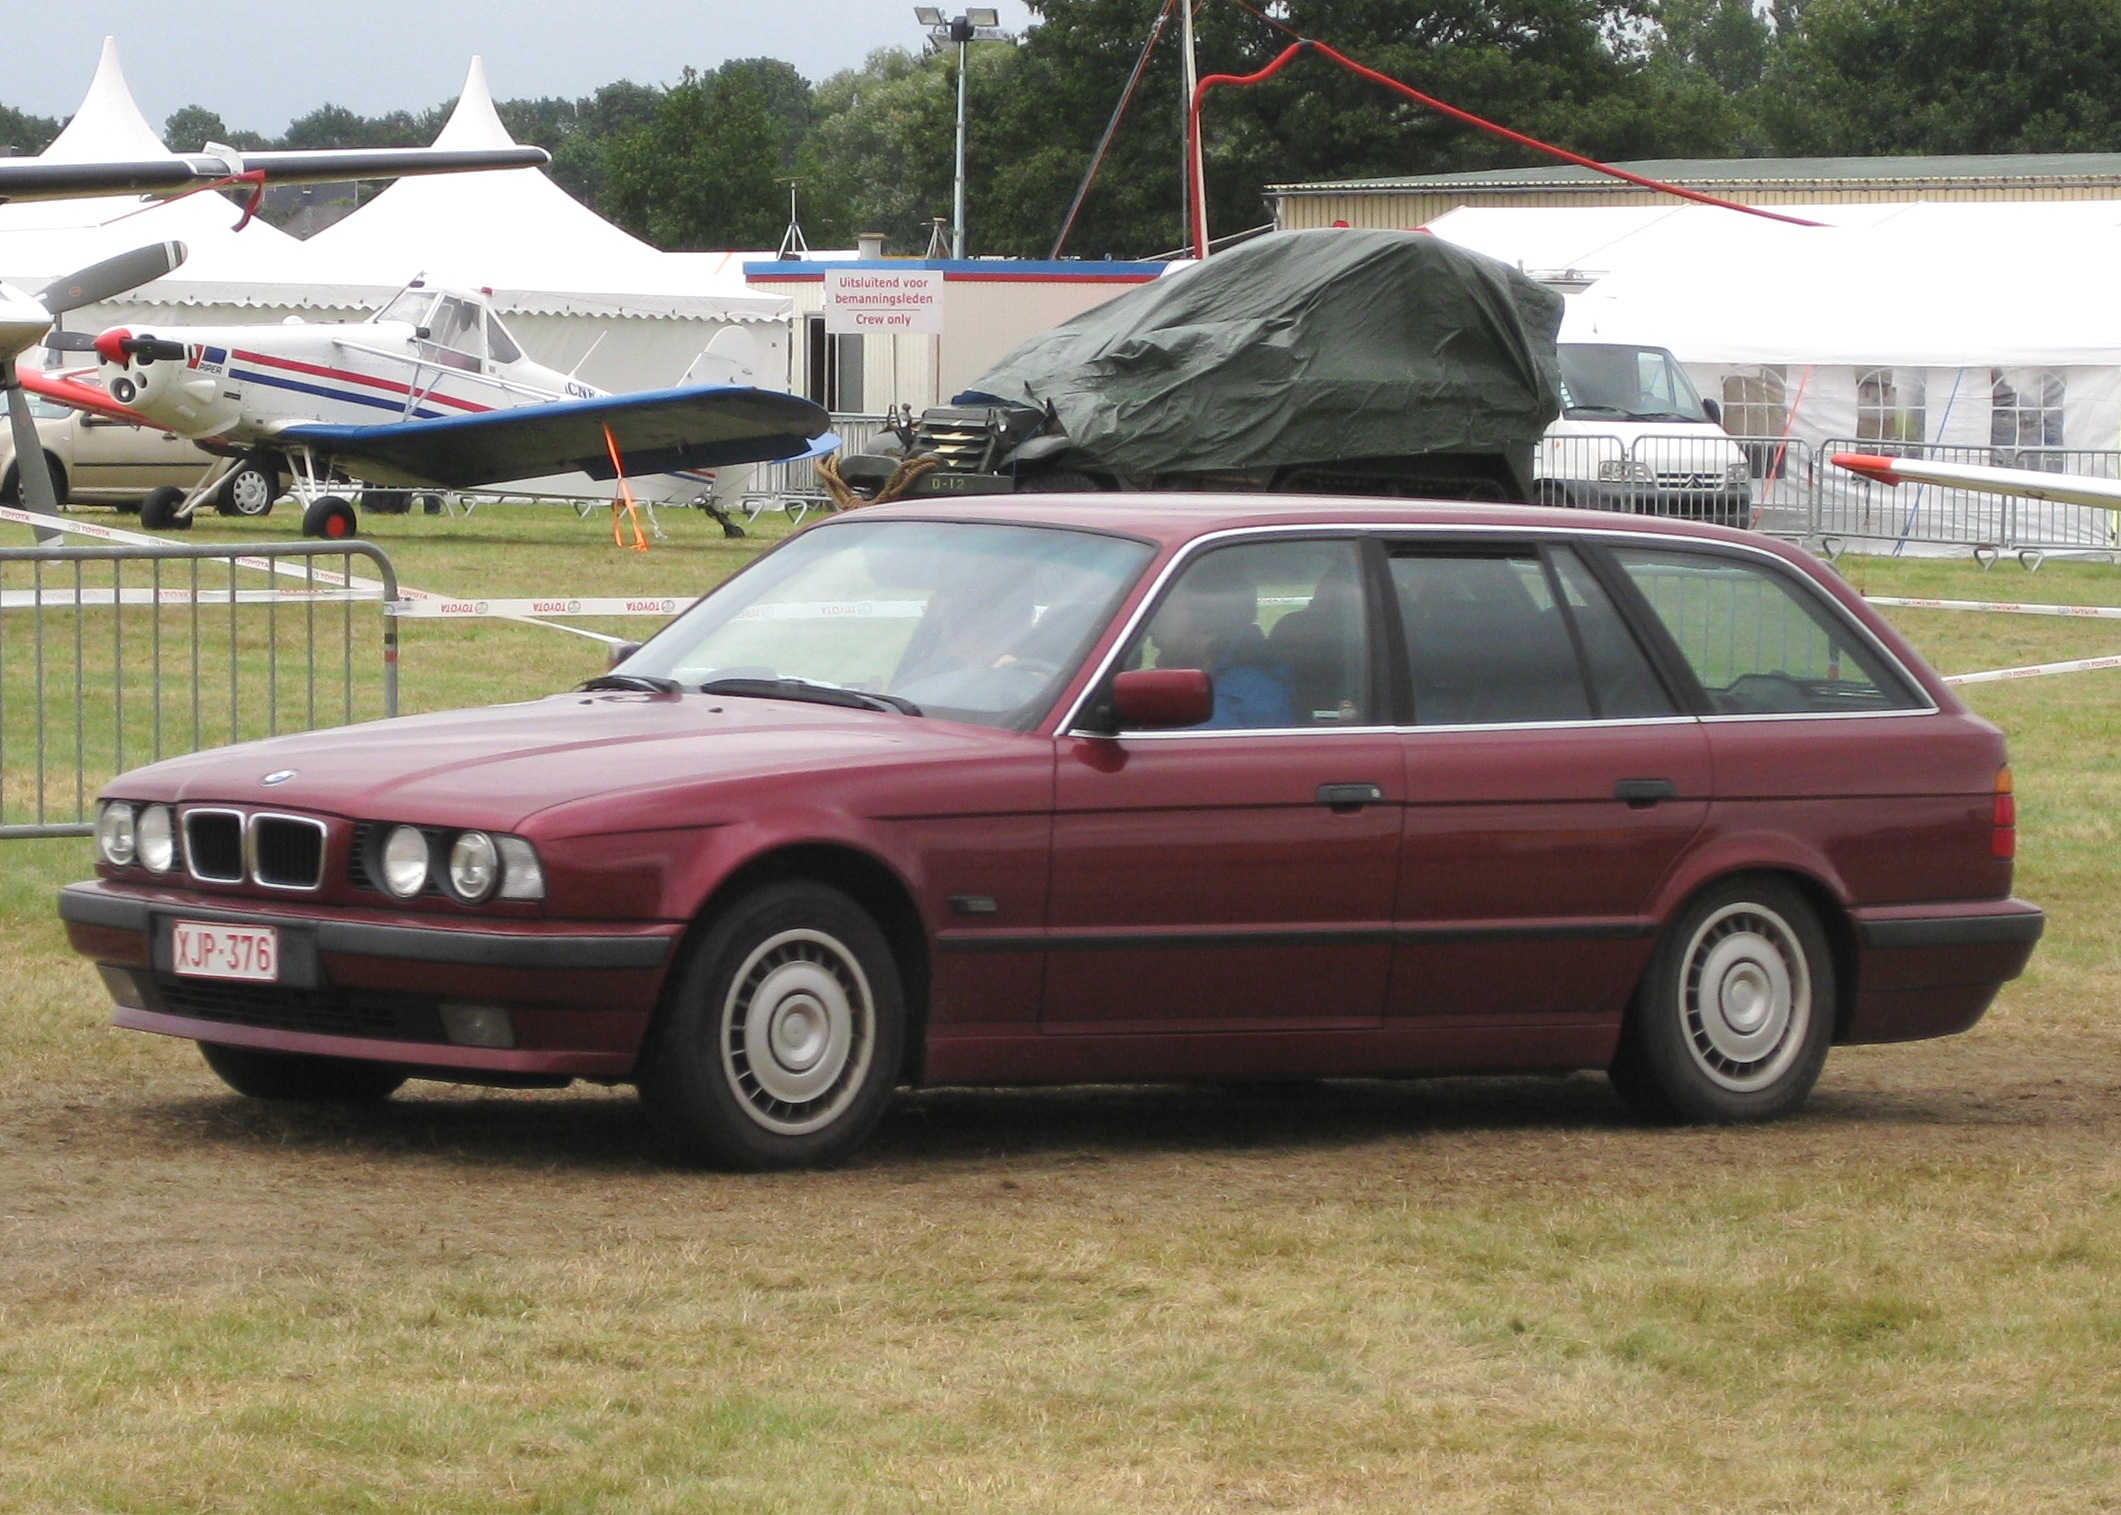 File Bmw E34 Touring Arrives At Schaffen Diest Jpg Wikimedia Commons